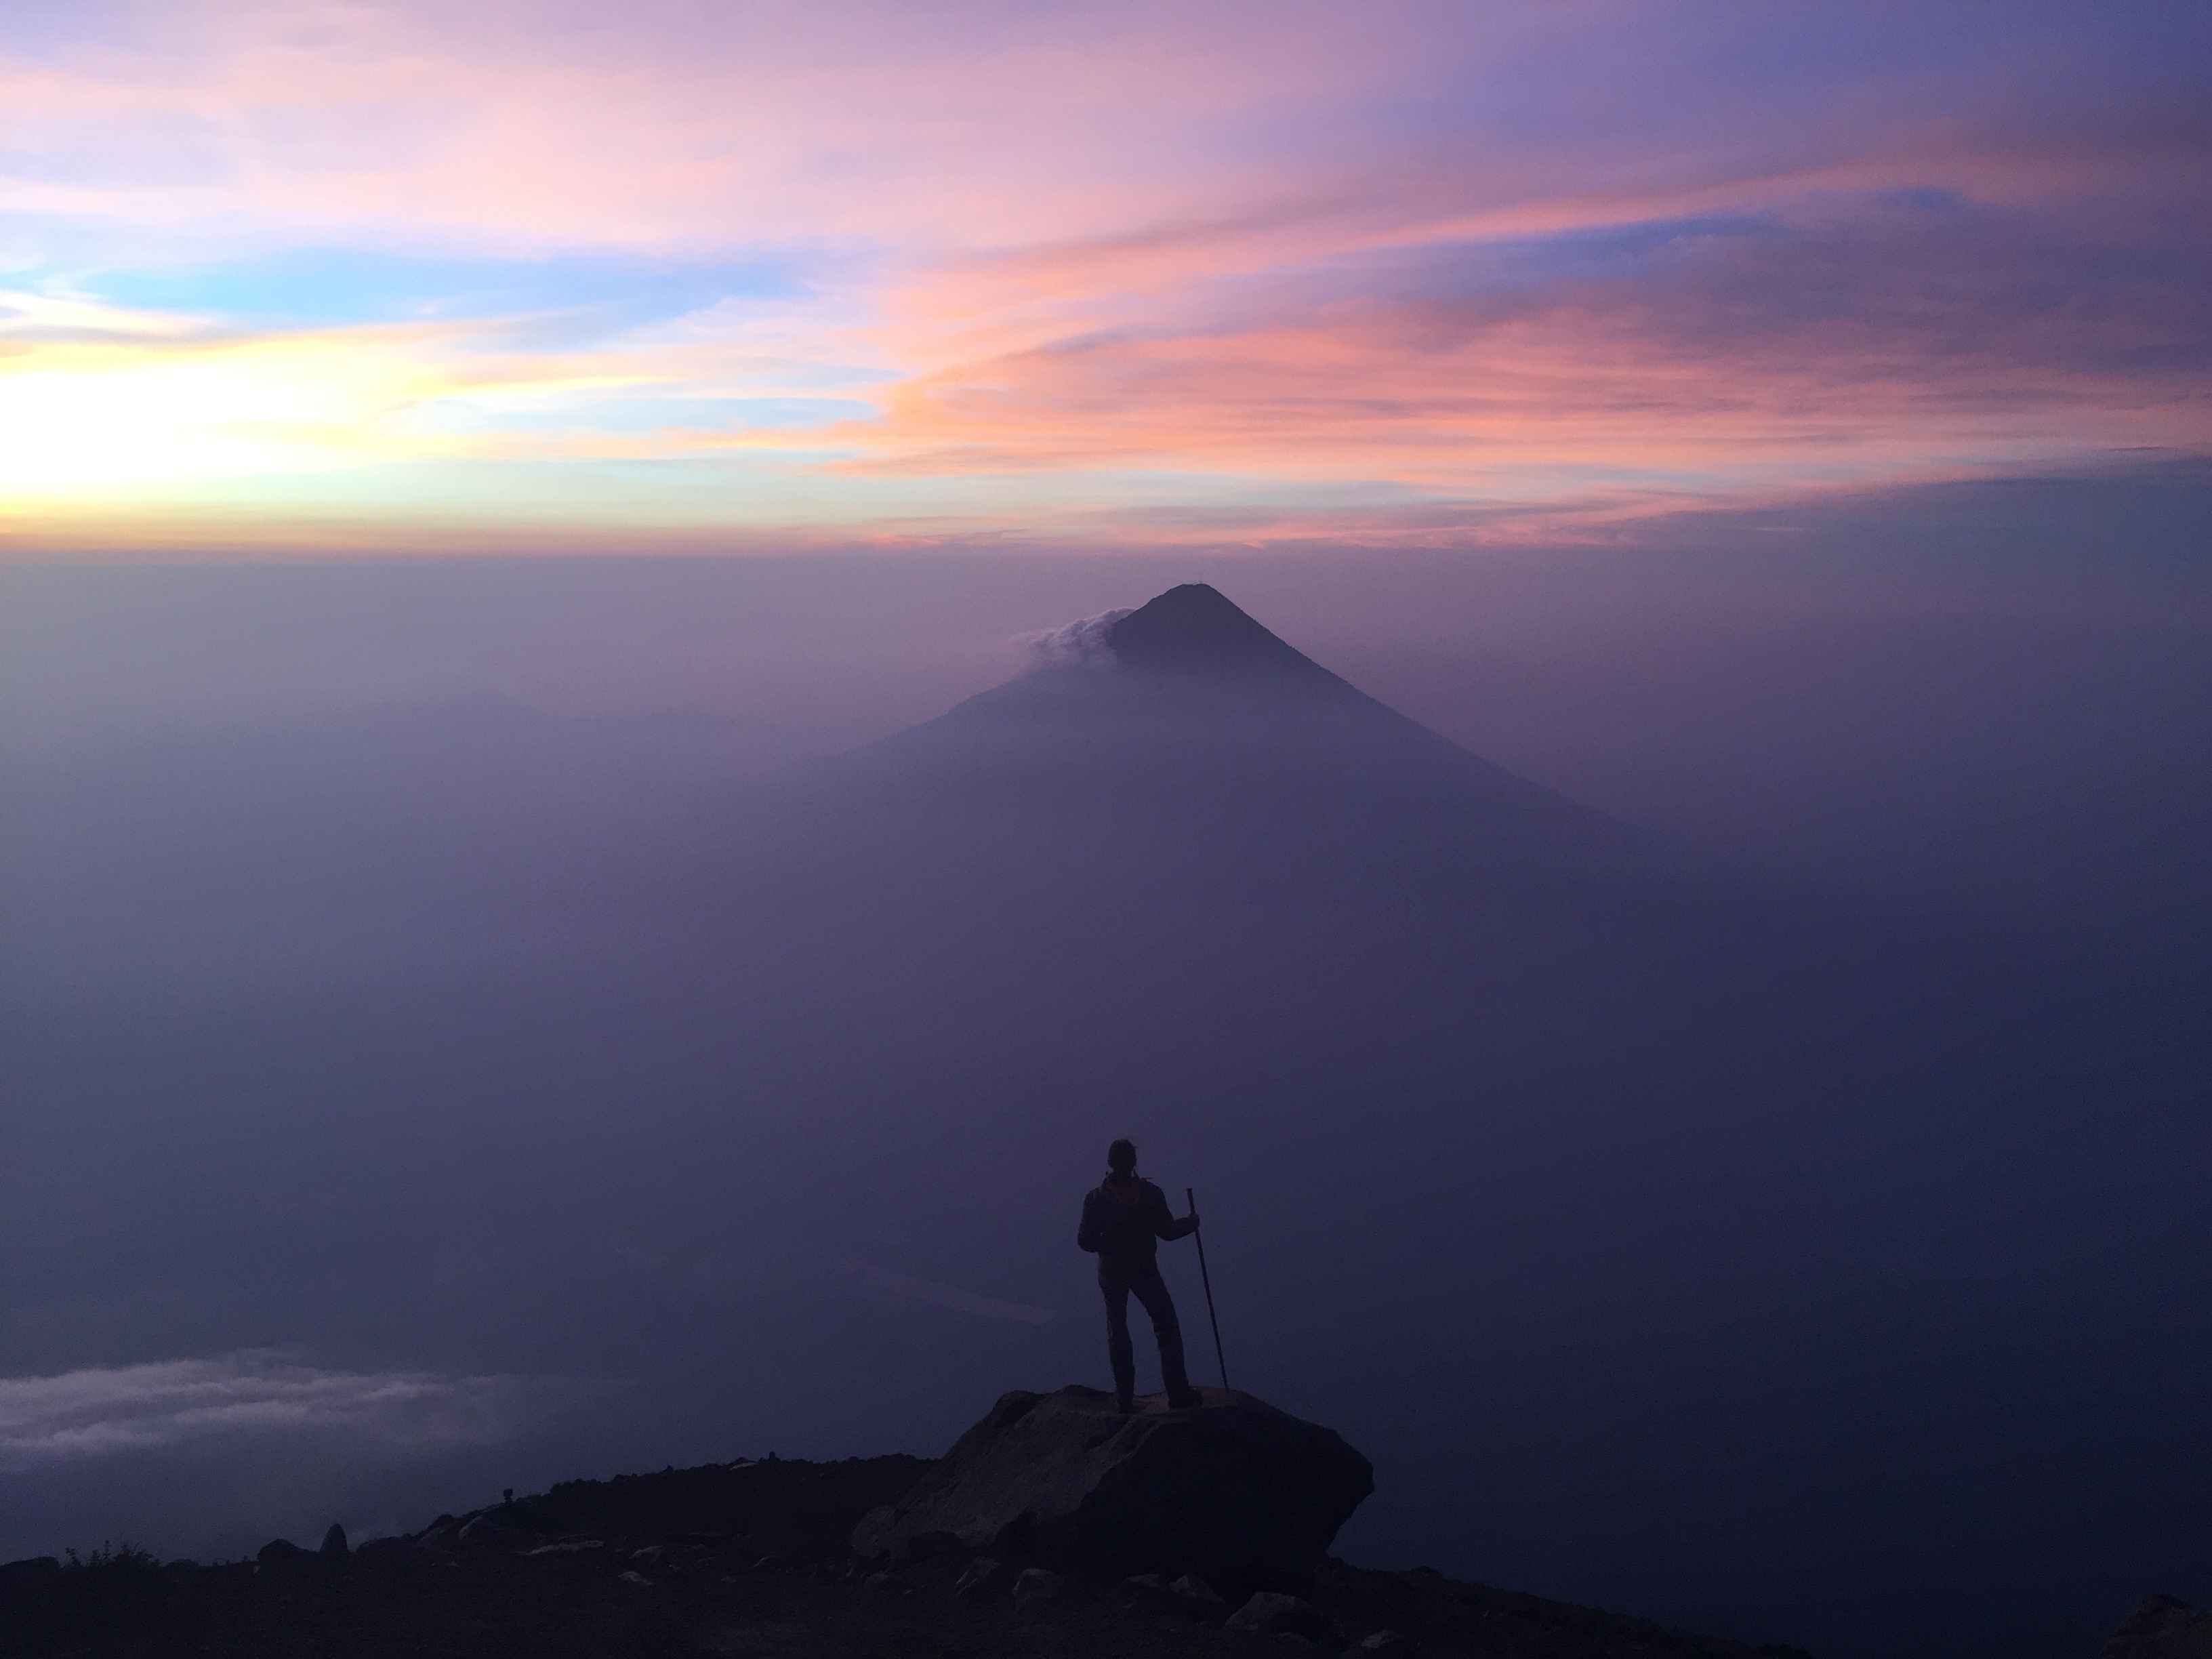 One last view at the summit of Acatenango Volcano.